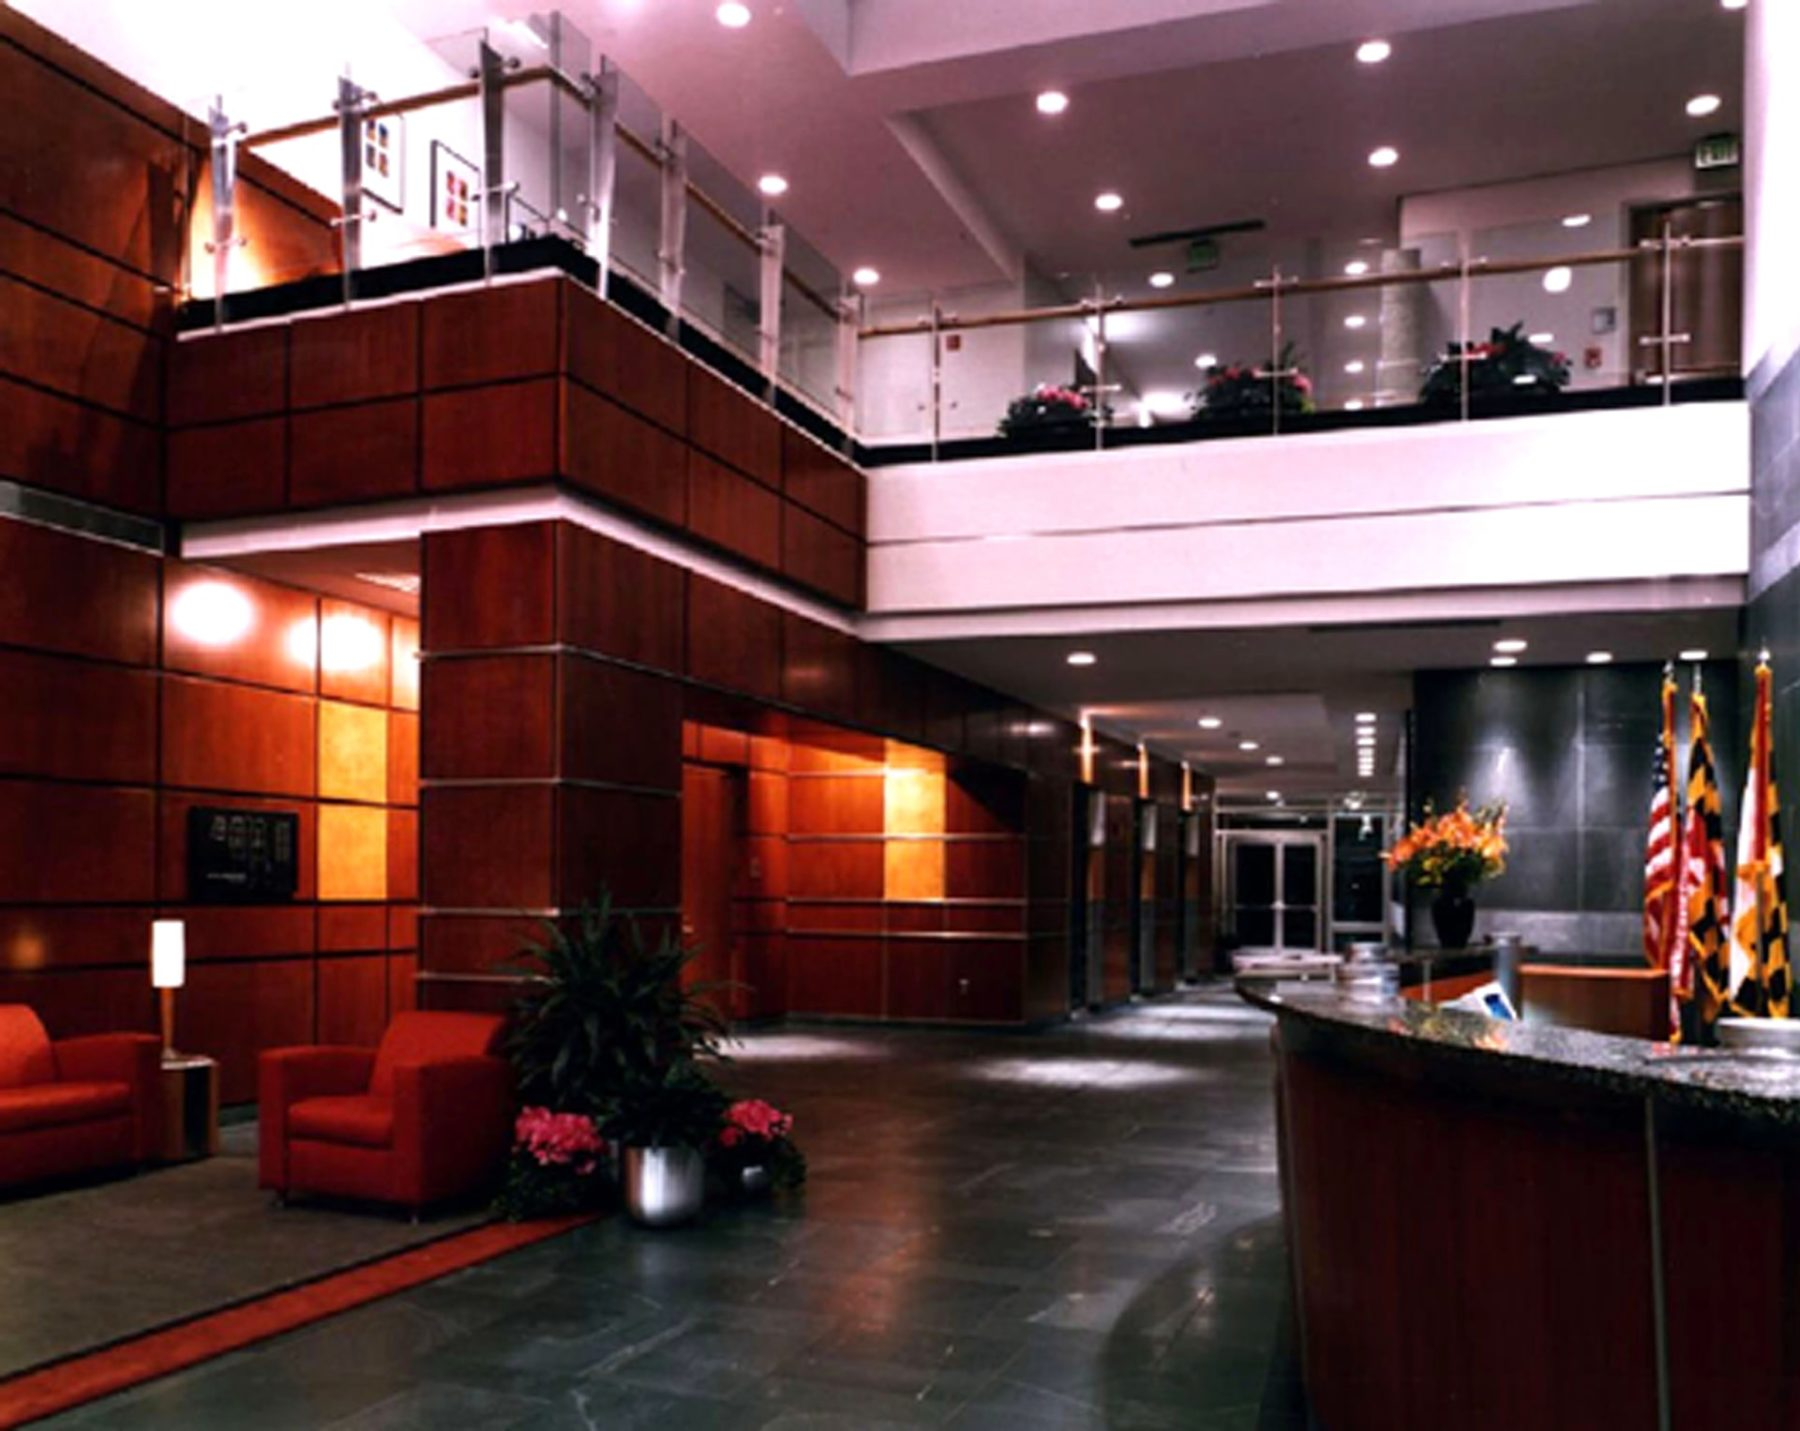 T. Rowe Price Financial Center Phase I